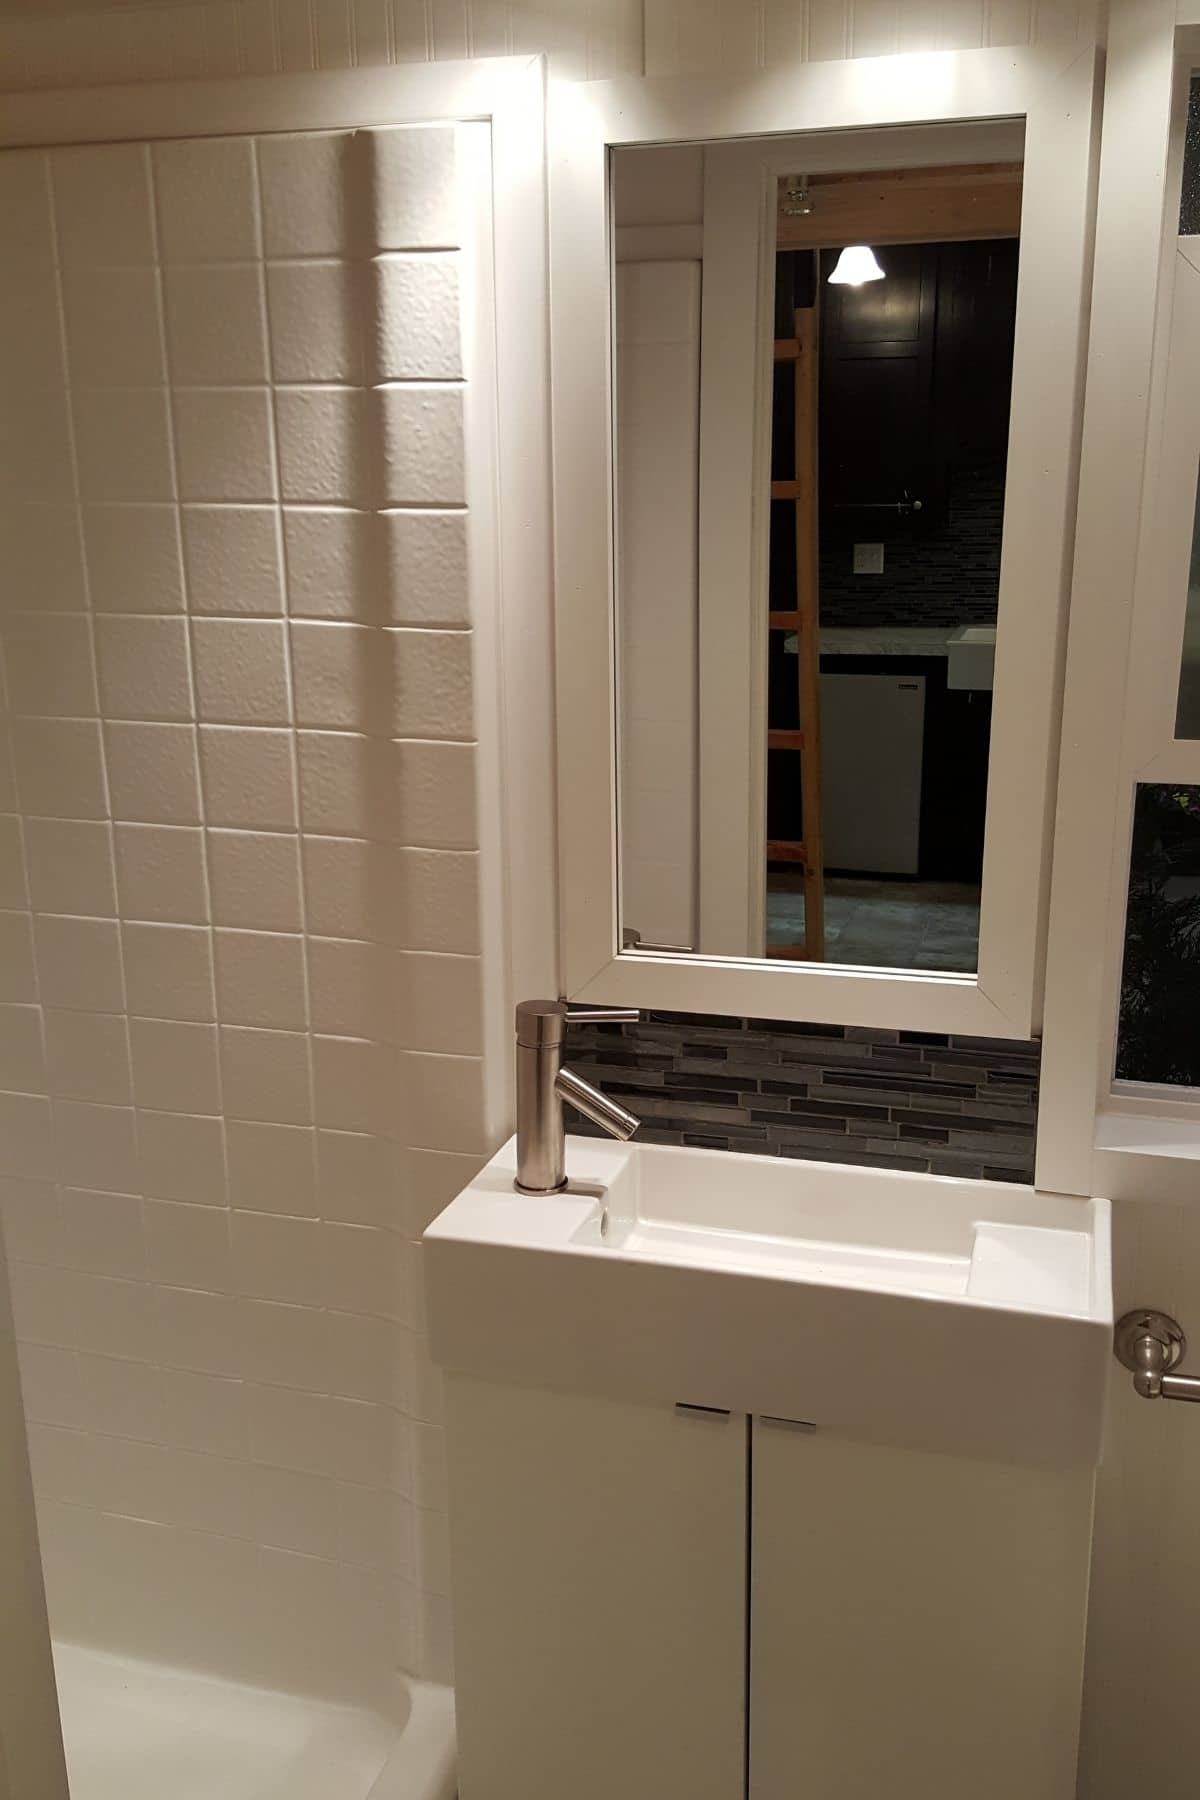 white tile wall next to white sink with mirror above vanity